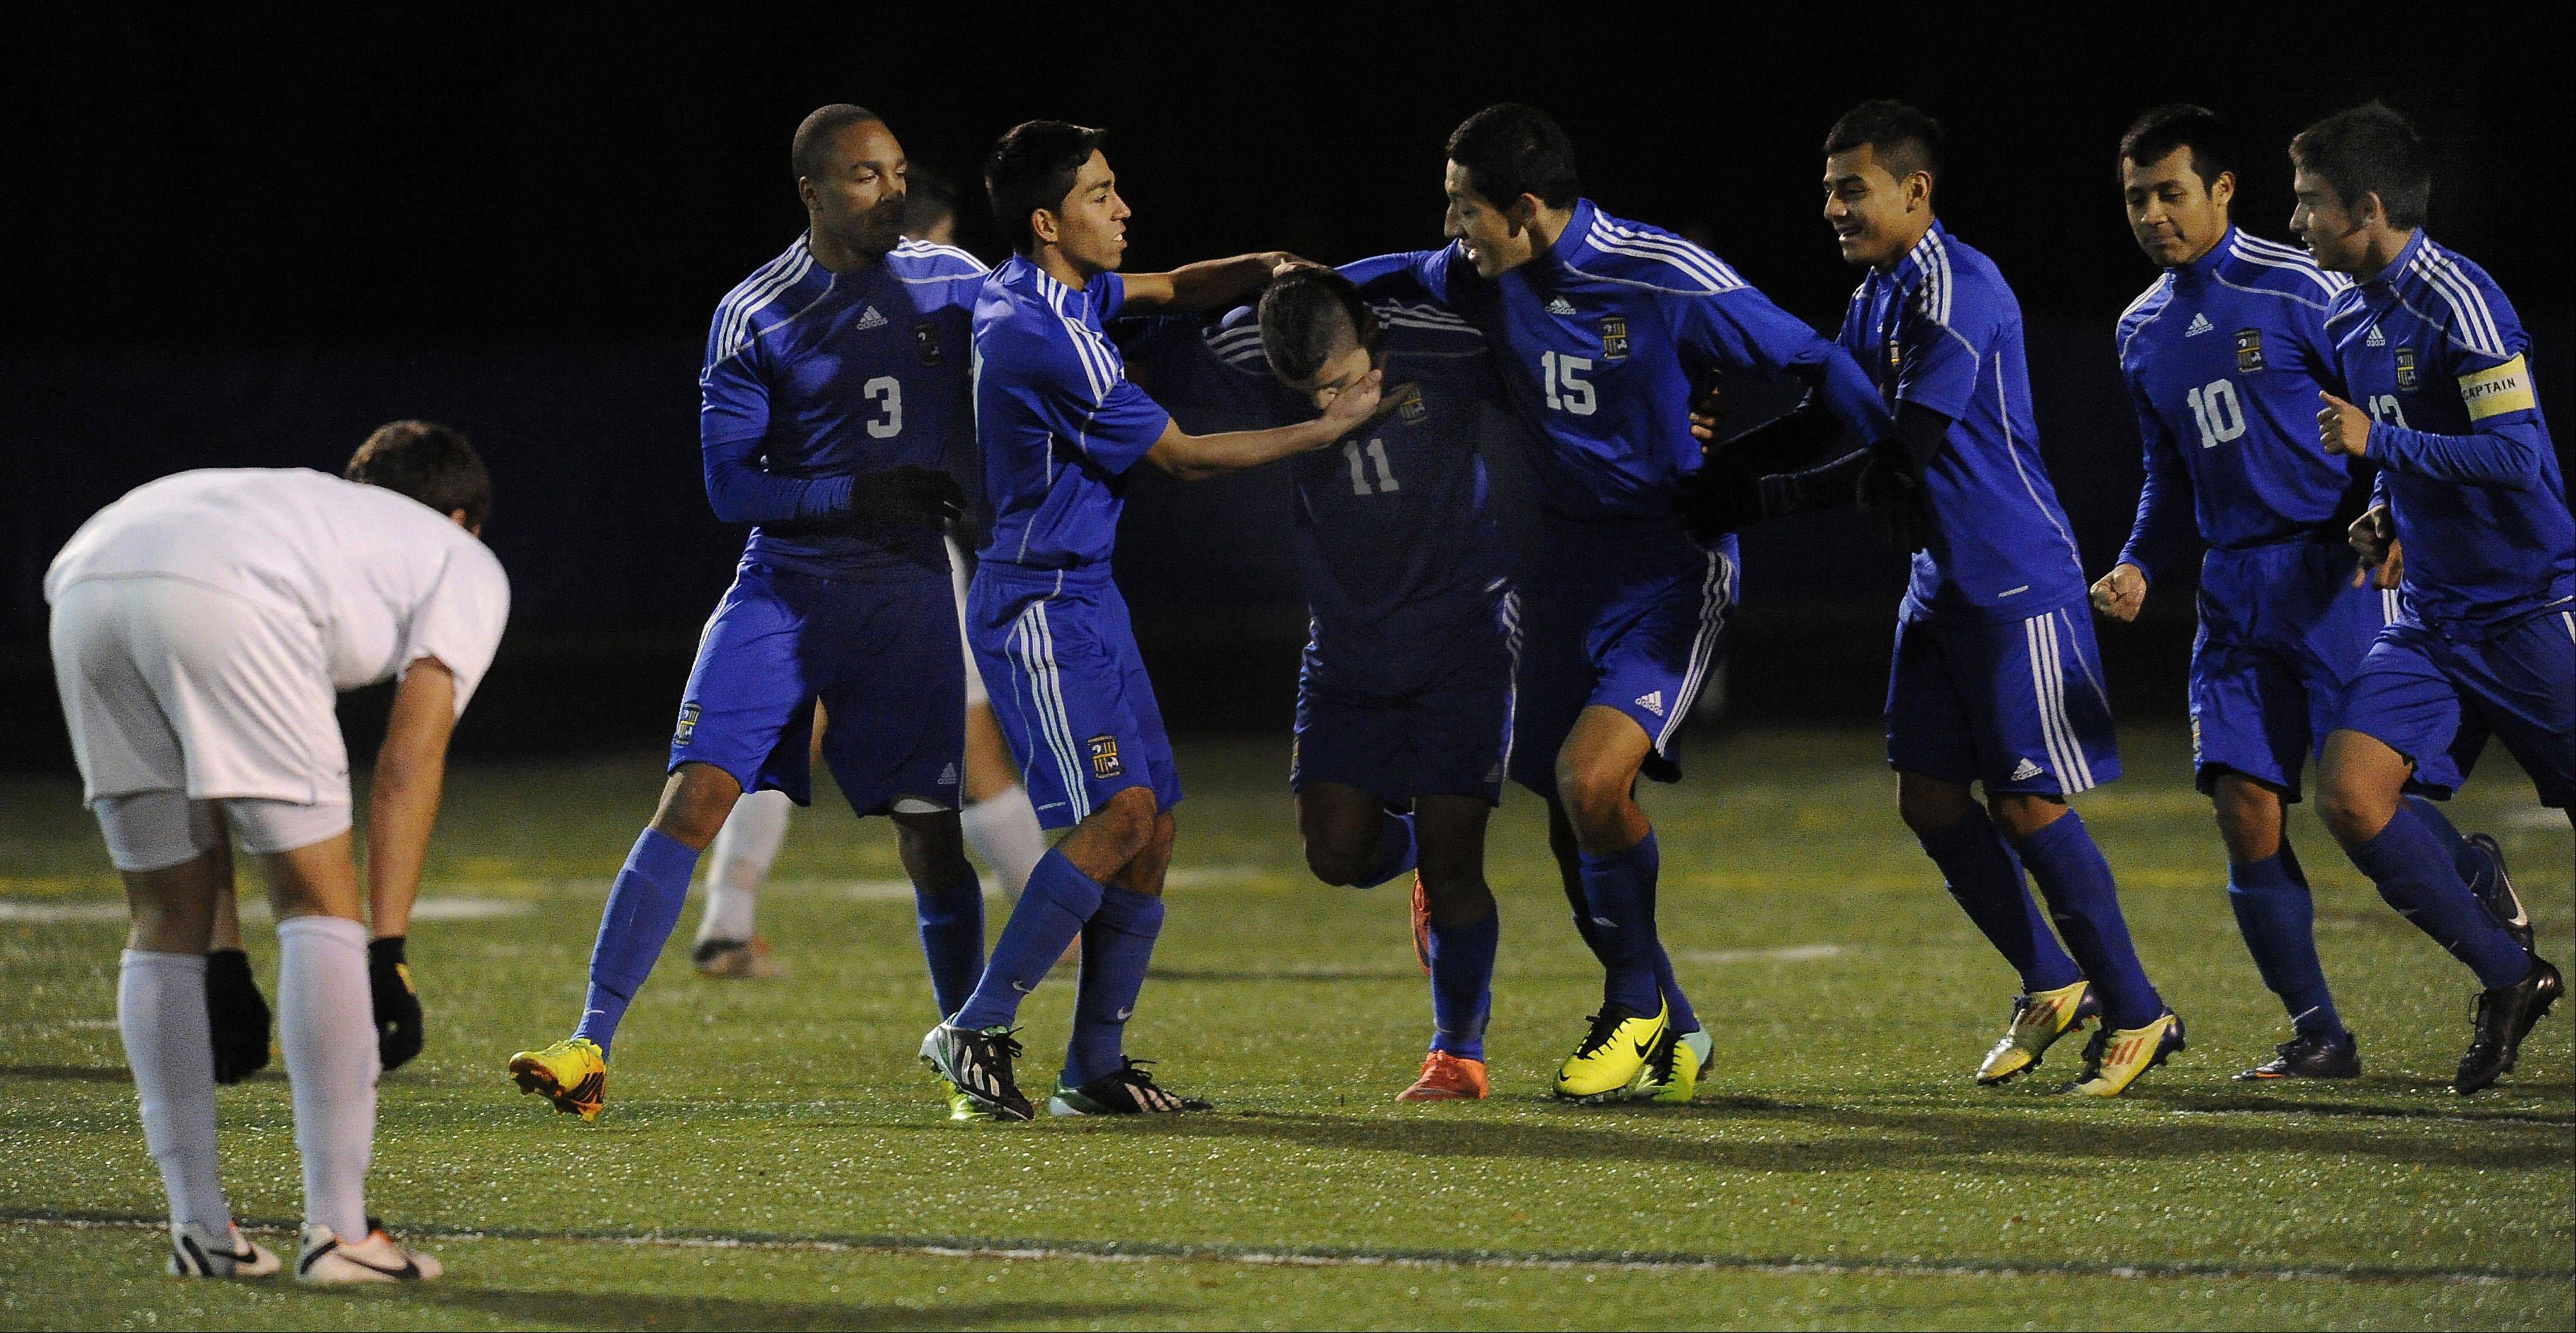 Wheeling tops Lake Park in state semis